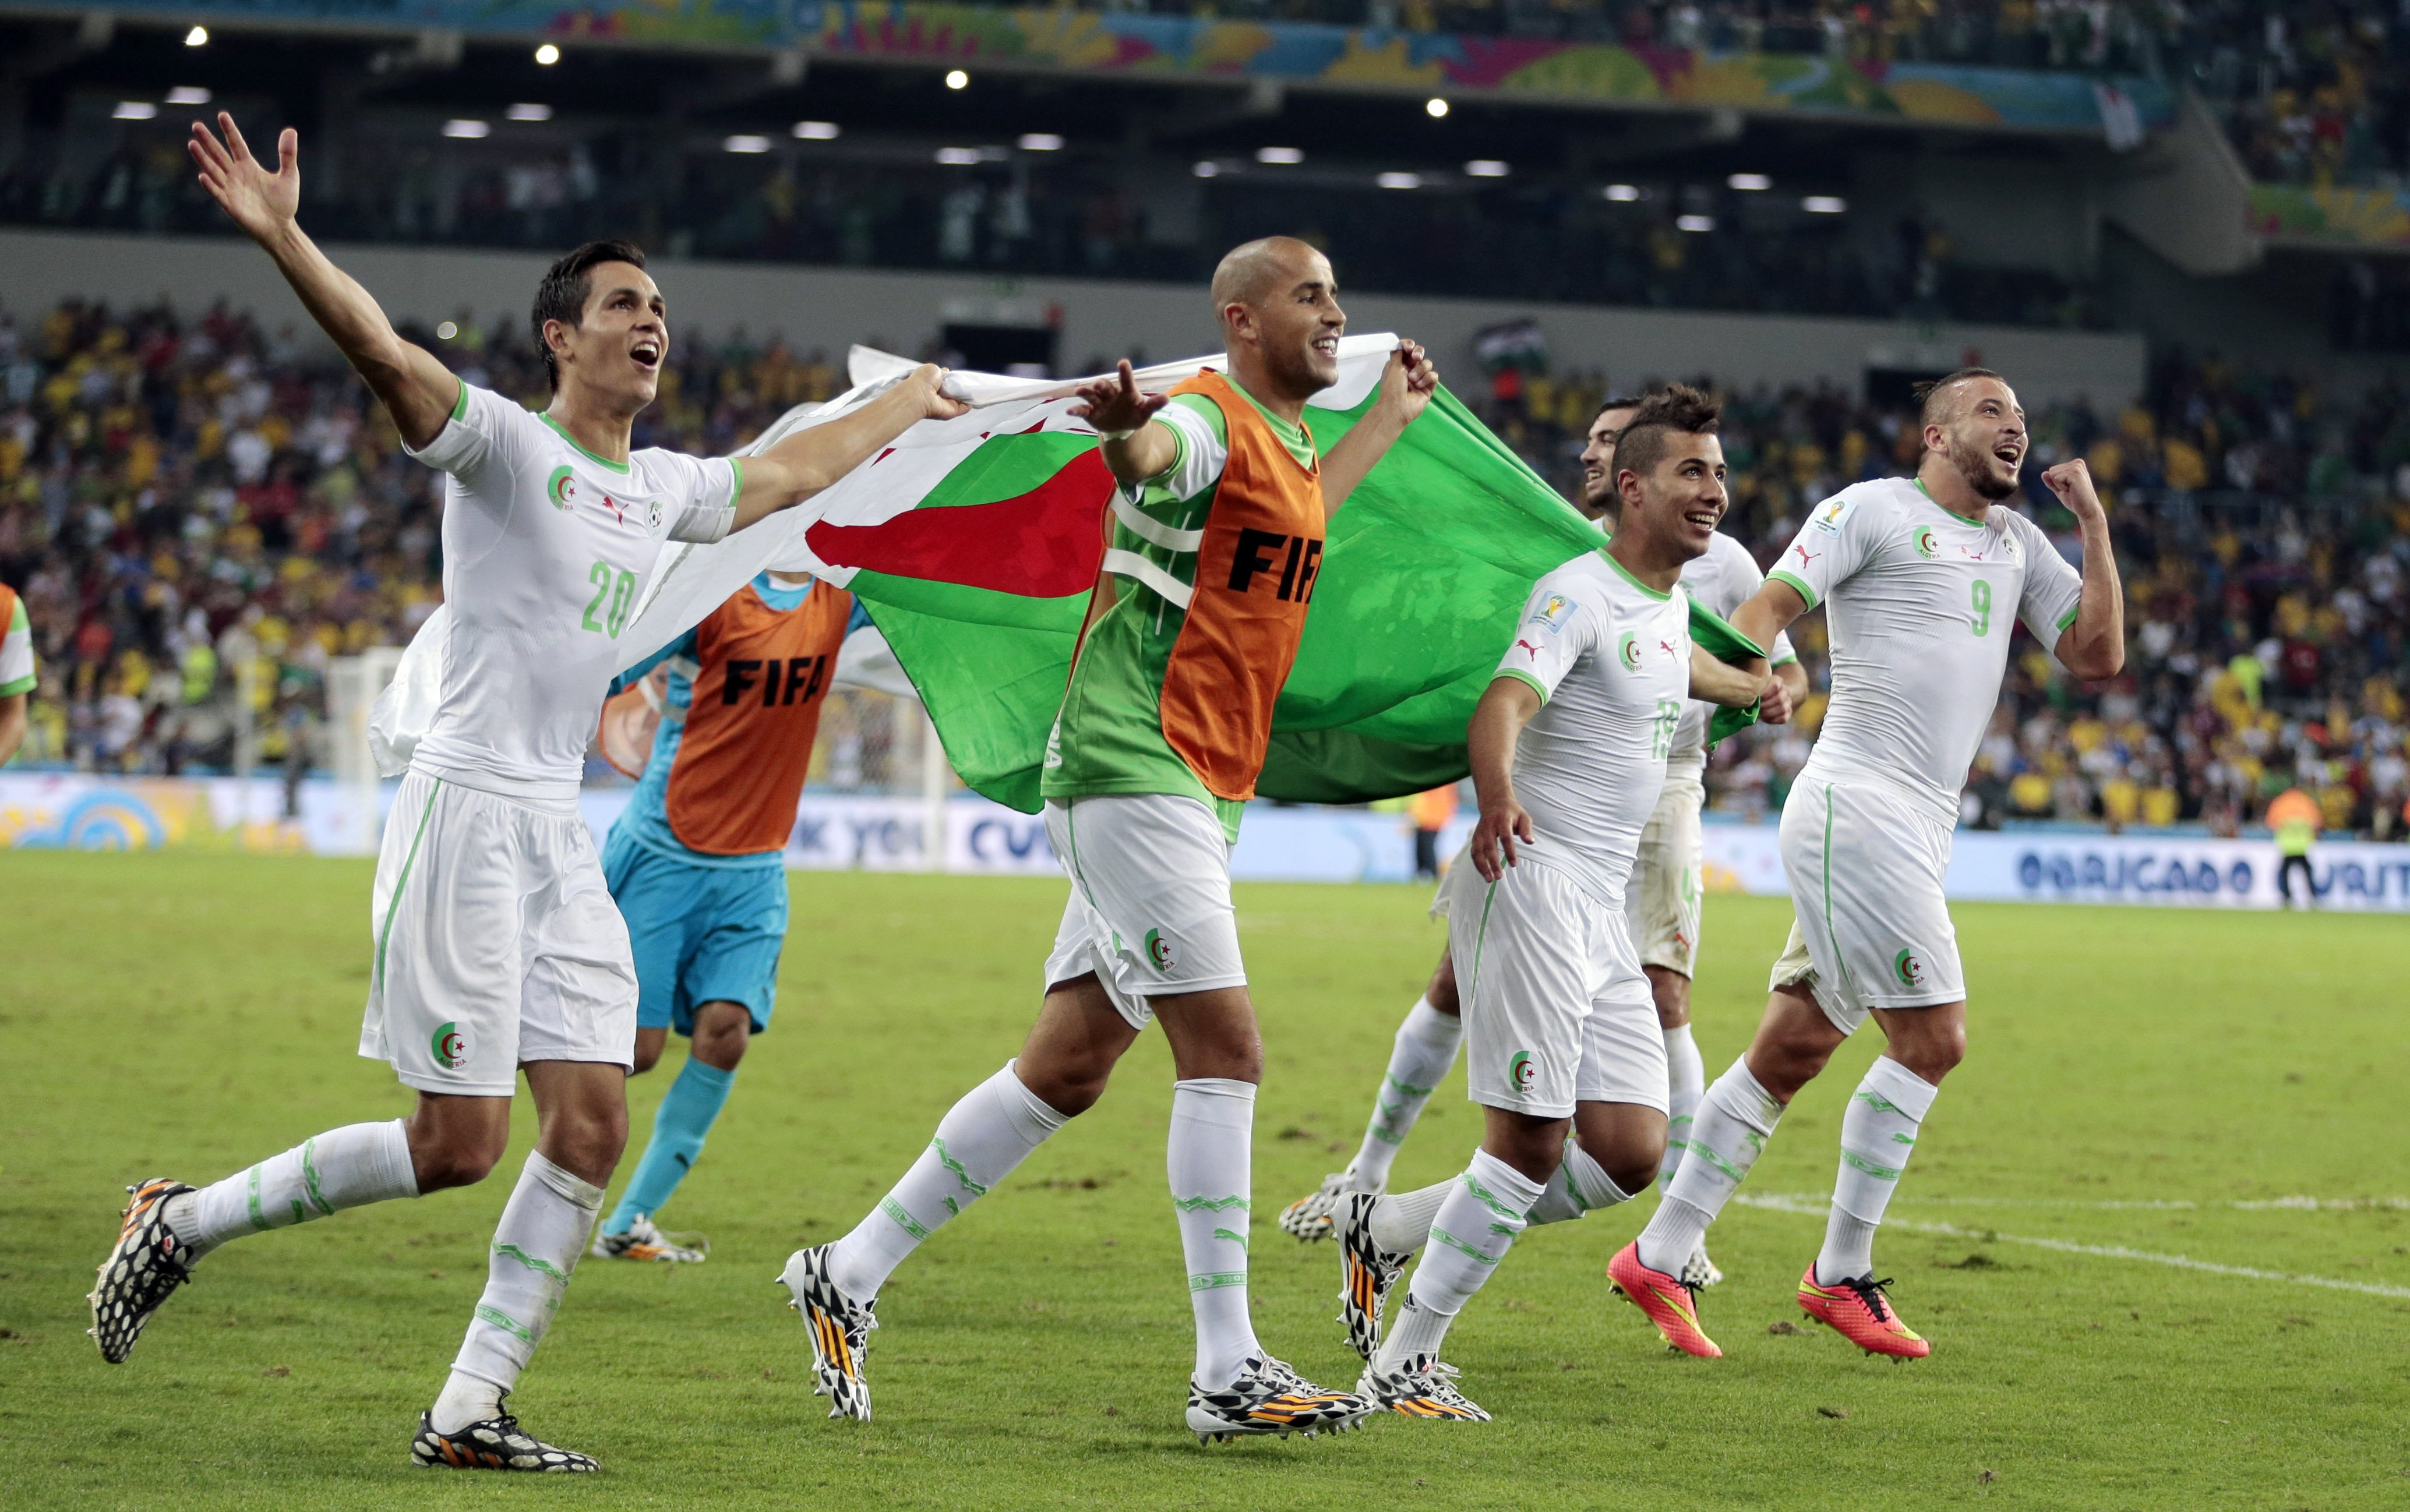 Algerian players celebrate after the group H World Cup soccer match between Algeria and Russia at the Arena da Baixada in Curitiba, Brazil on June 26, 2014.